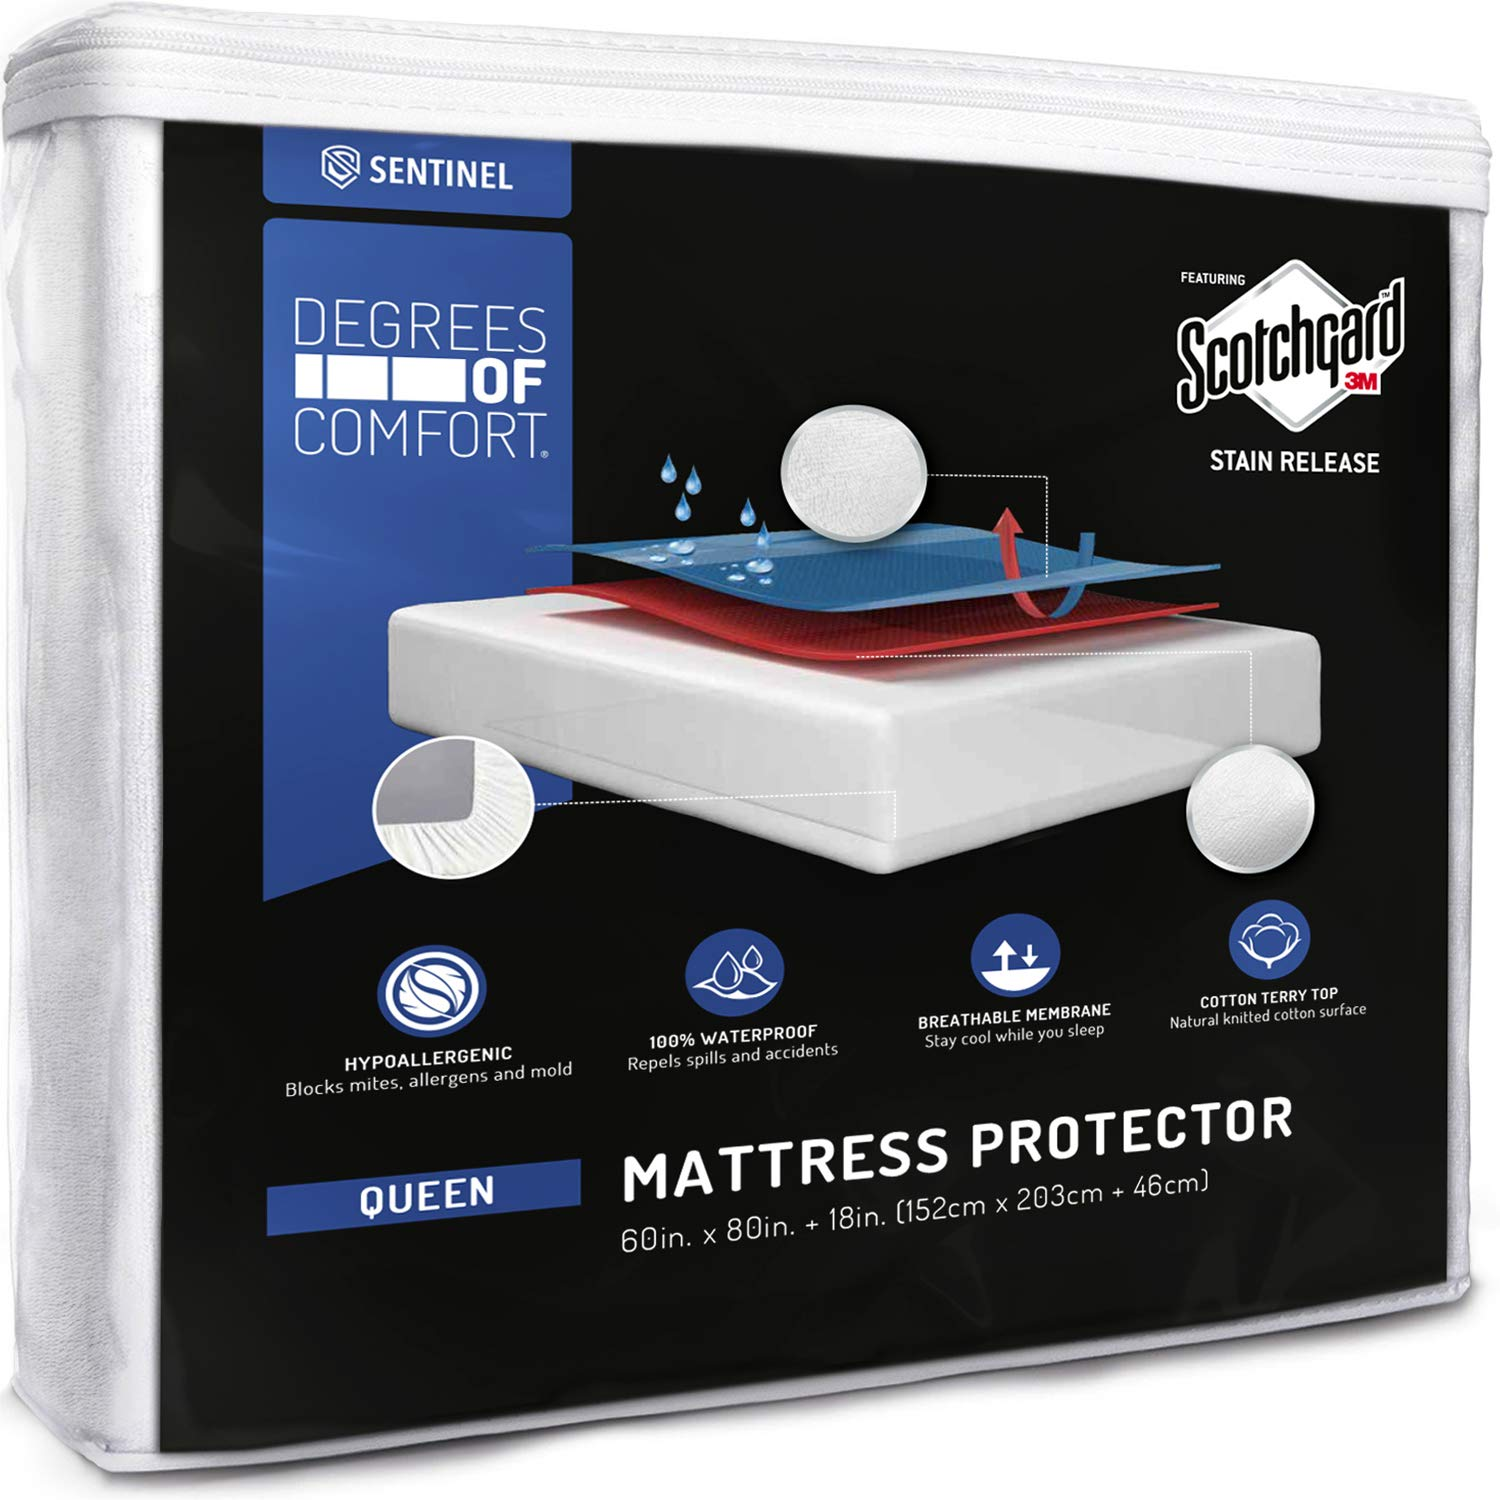 Queen Waterproof Mattress Protector | Deep Pocket, Breathable | Premium Fitted Cotton Terry Cover with 3M Scotchgard Stain Release | Urine and Spill Protection